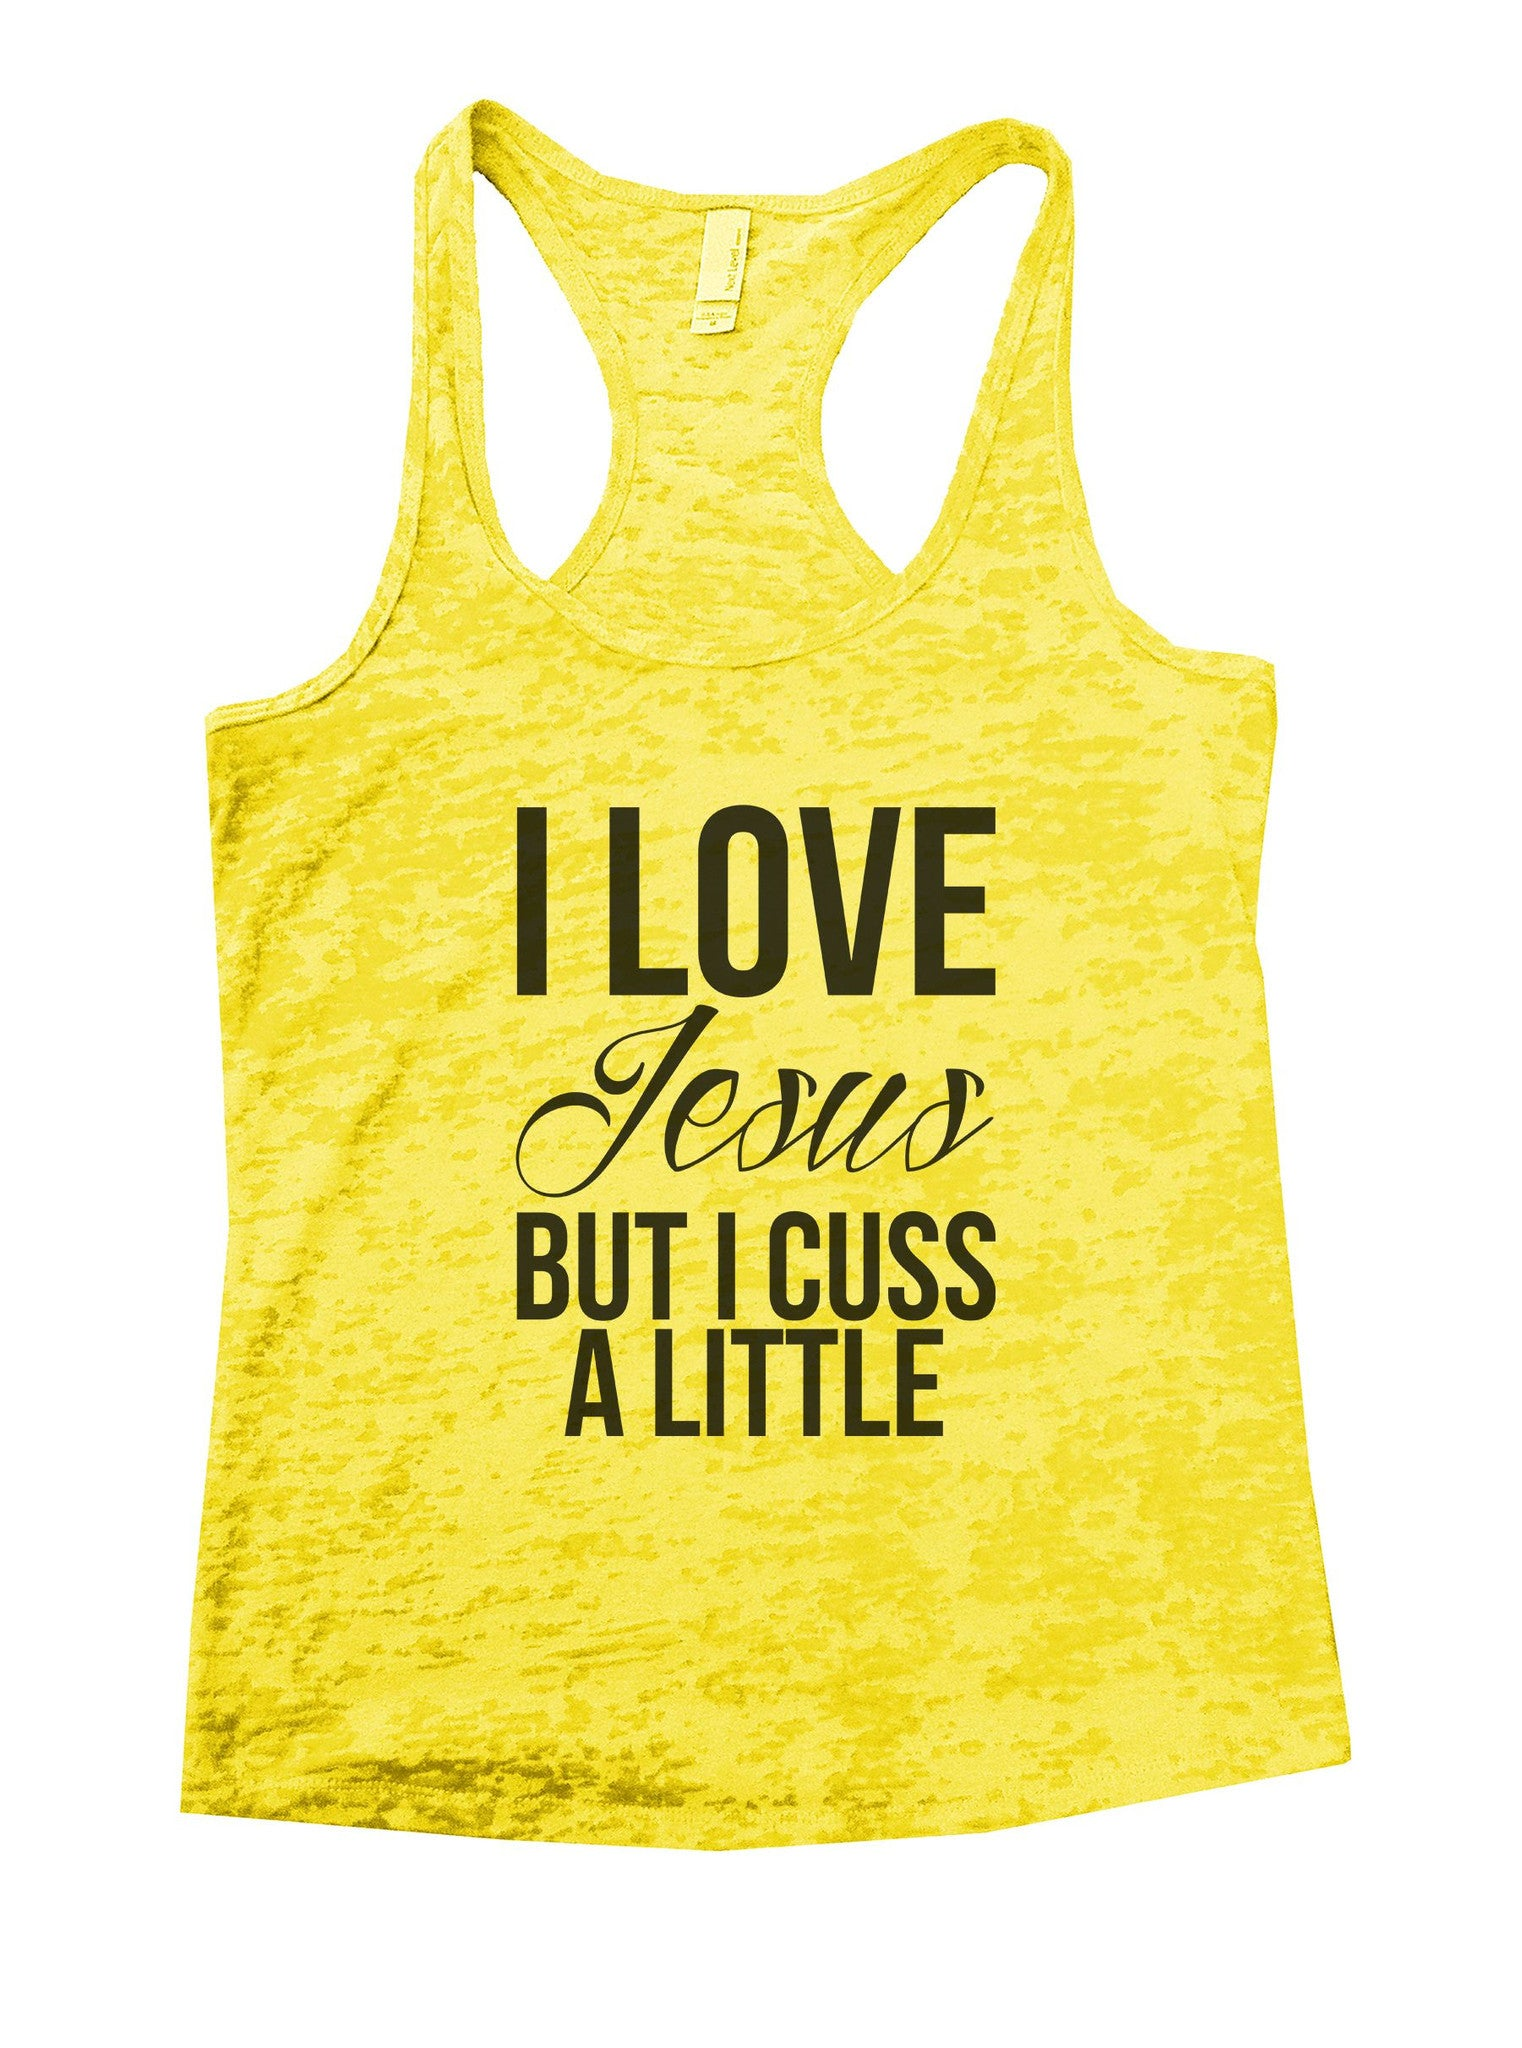 I Love Jesus But I Cuss A Little Burnout Tank Top By BurnoutTankTops.com - 1130 - Funny Shirts Tank Tops Burnouts and Triblends  - 6